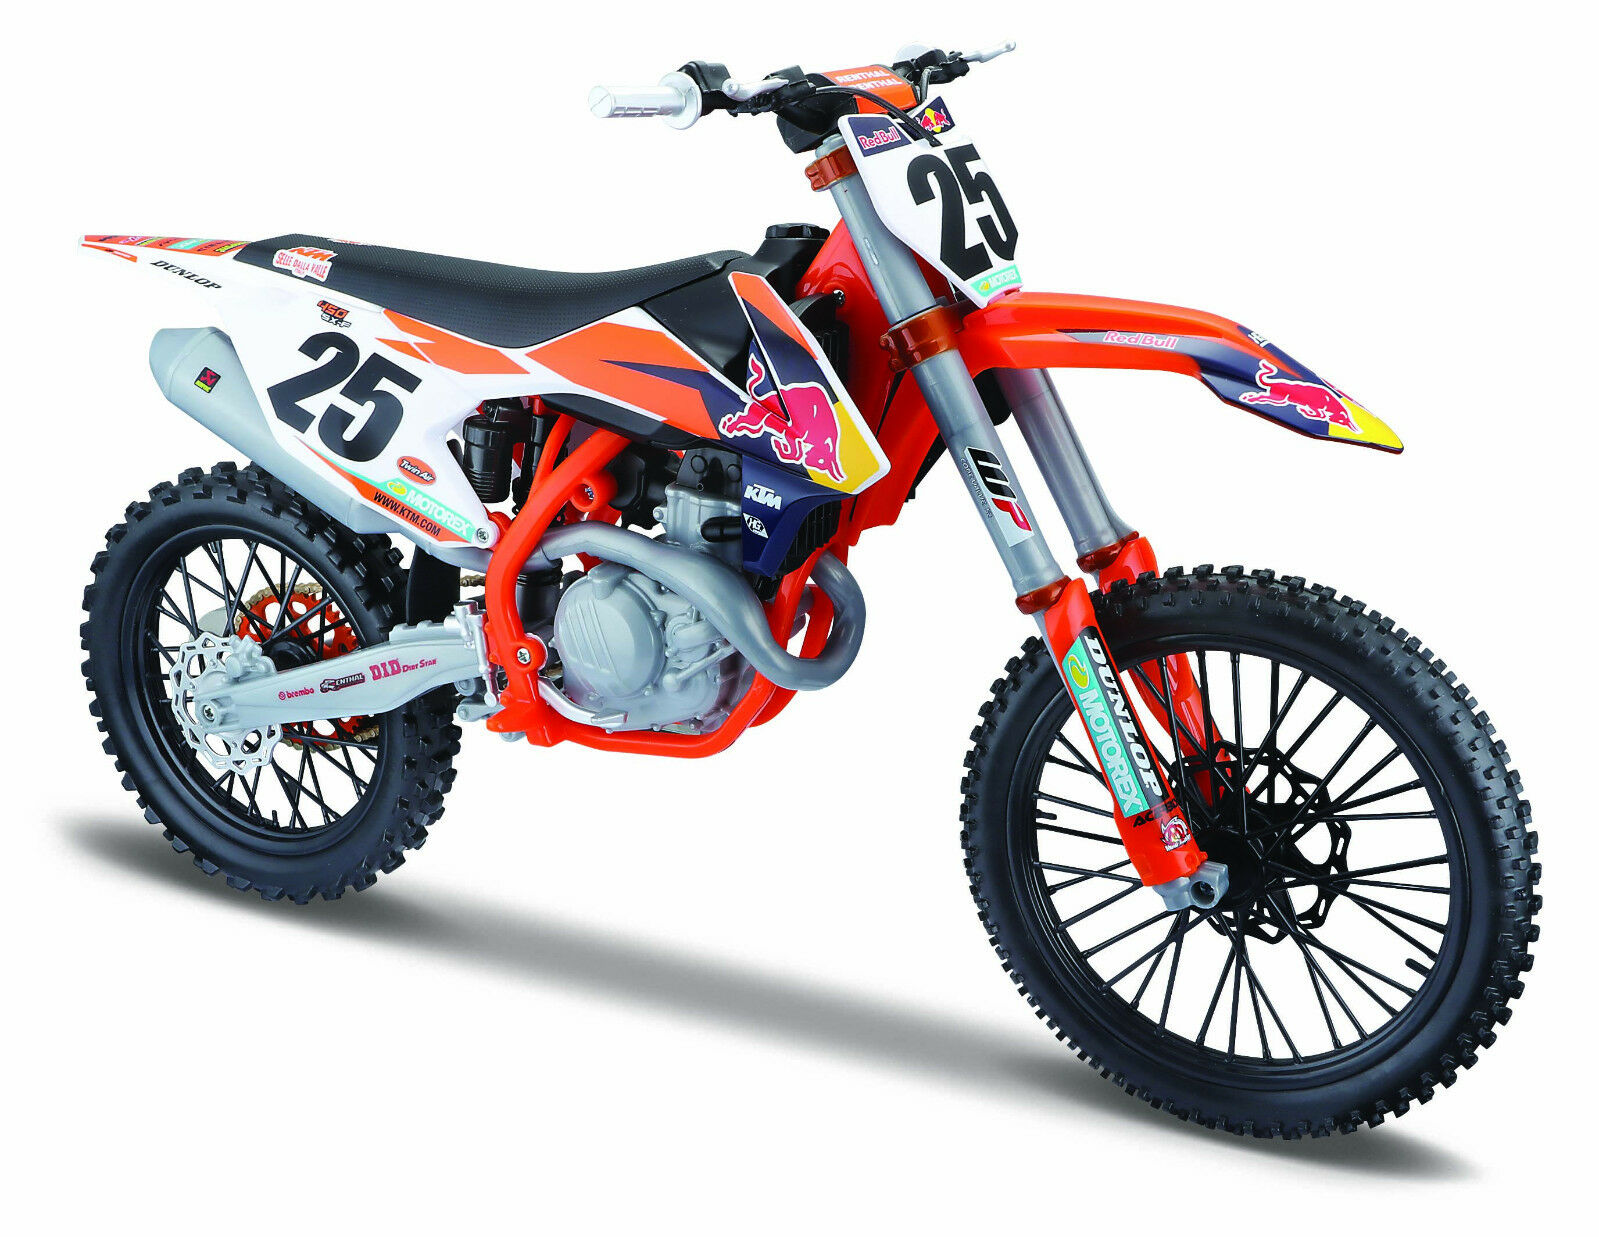 MAISTO 1 6 KTM 450 SX-F RED BULL Supercross Racing MOTORCYCLE BIKE DIECAST MODEL